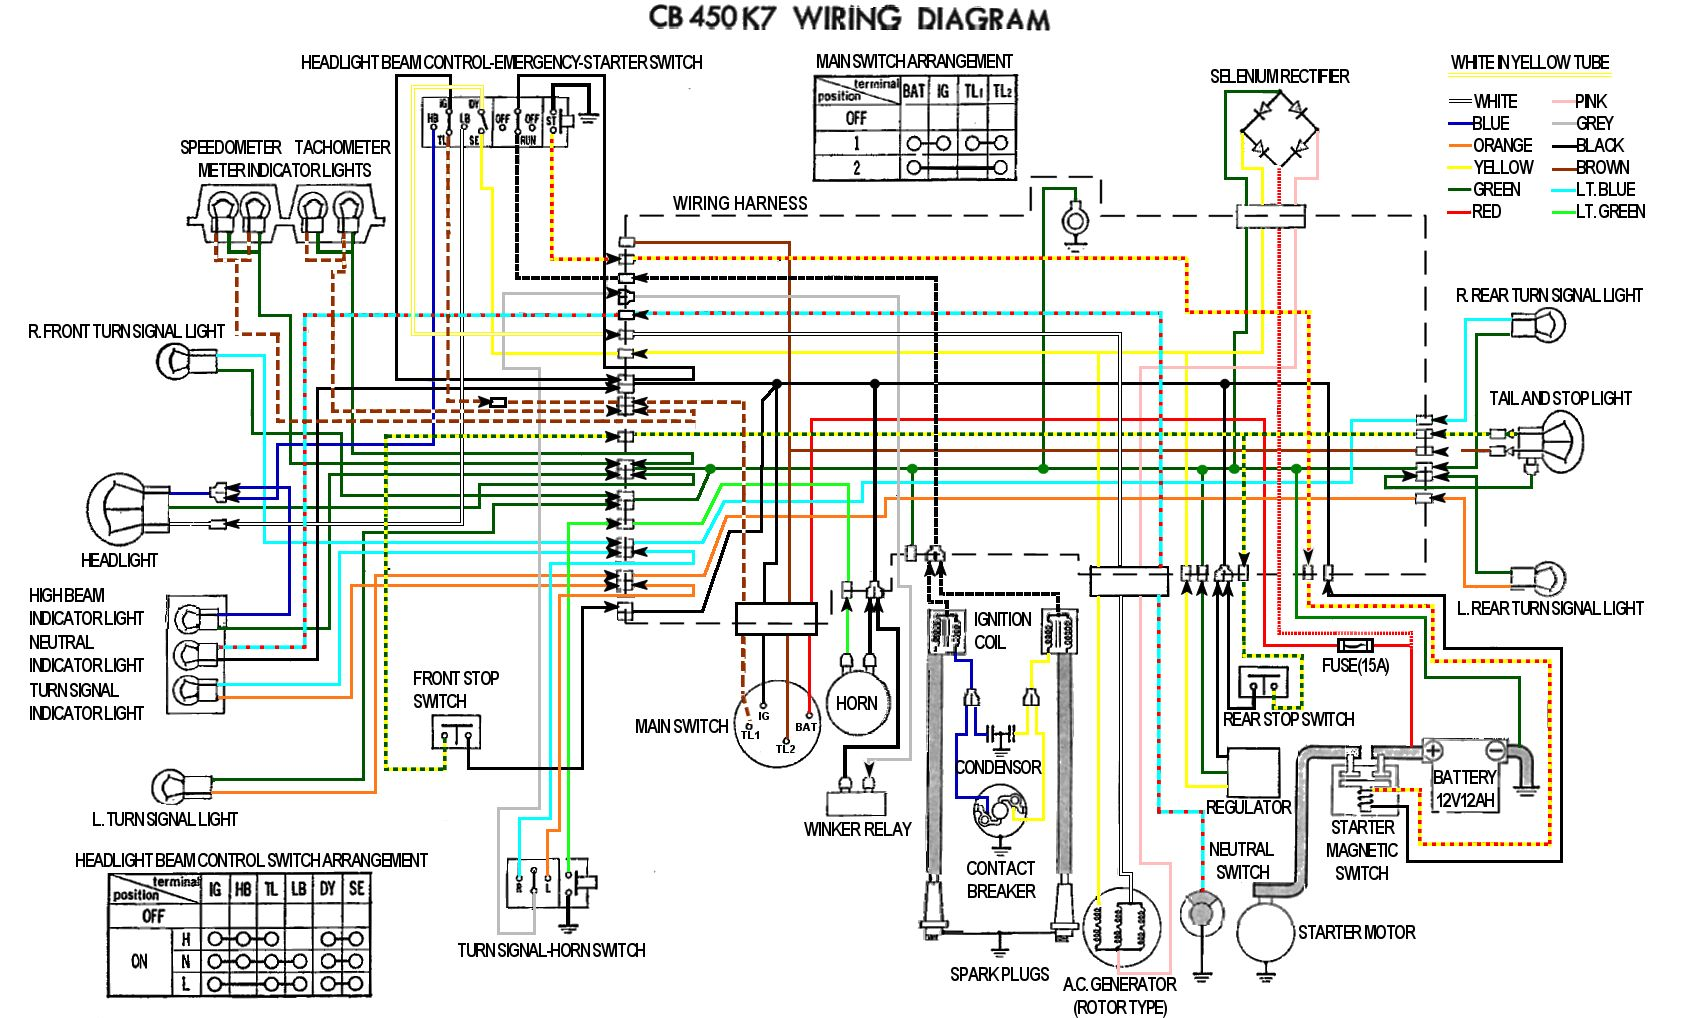 cb450 color wiring diagram (now corrected) model a wiring diagram in color model a wiring diagram ez a fro #1